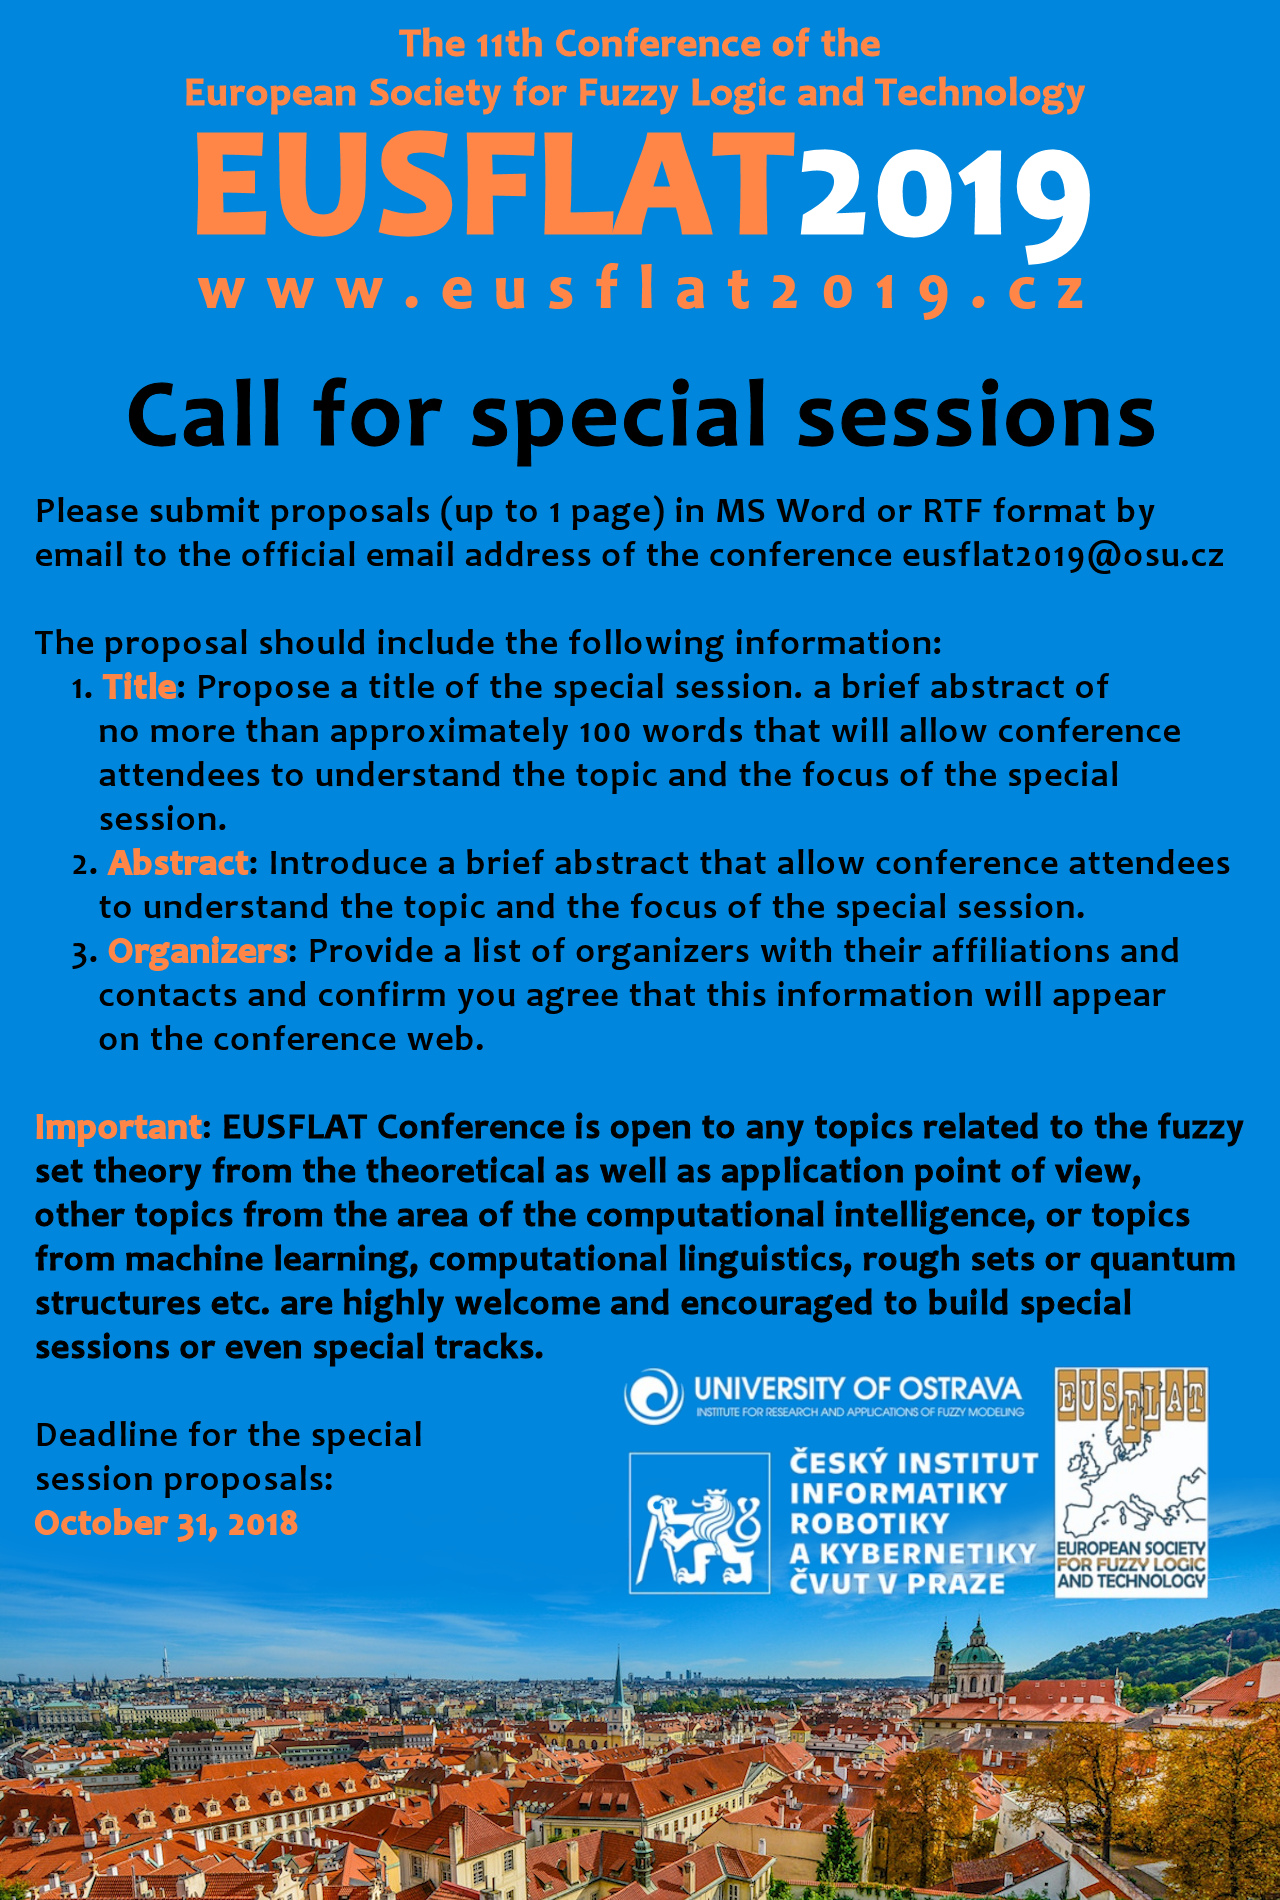 EUSFLAT 2019 special sessions